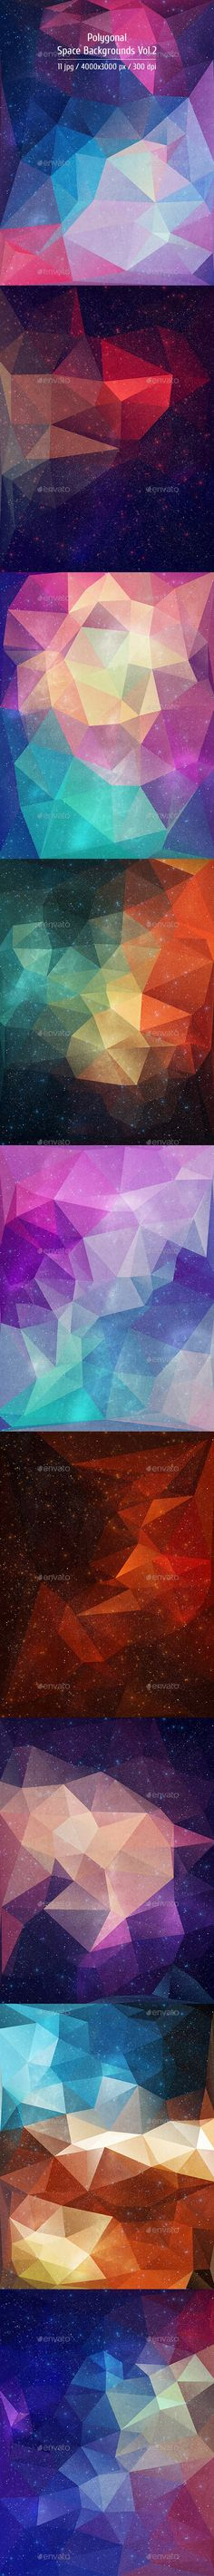 Polygonal Space Backgrounds. Download here: http://graphicriver.net/item/polygonal-space-backgrounds-vol2/10918101?ref=ksioks